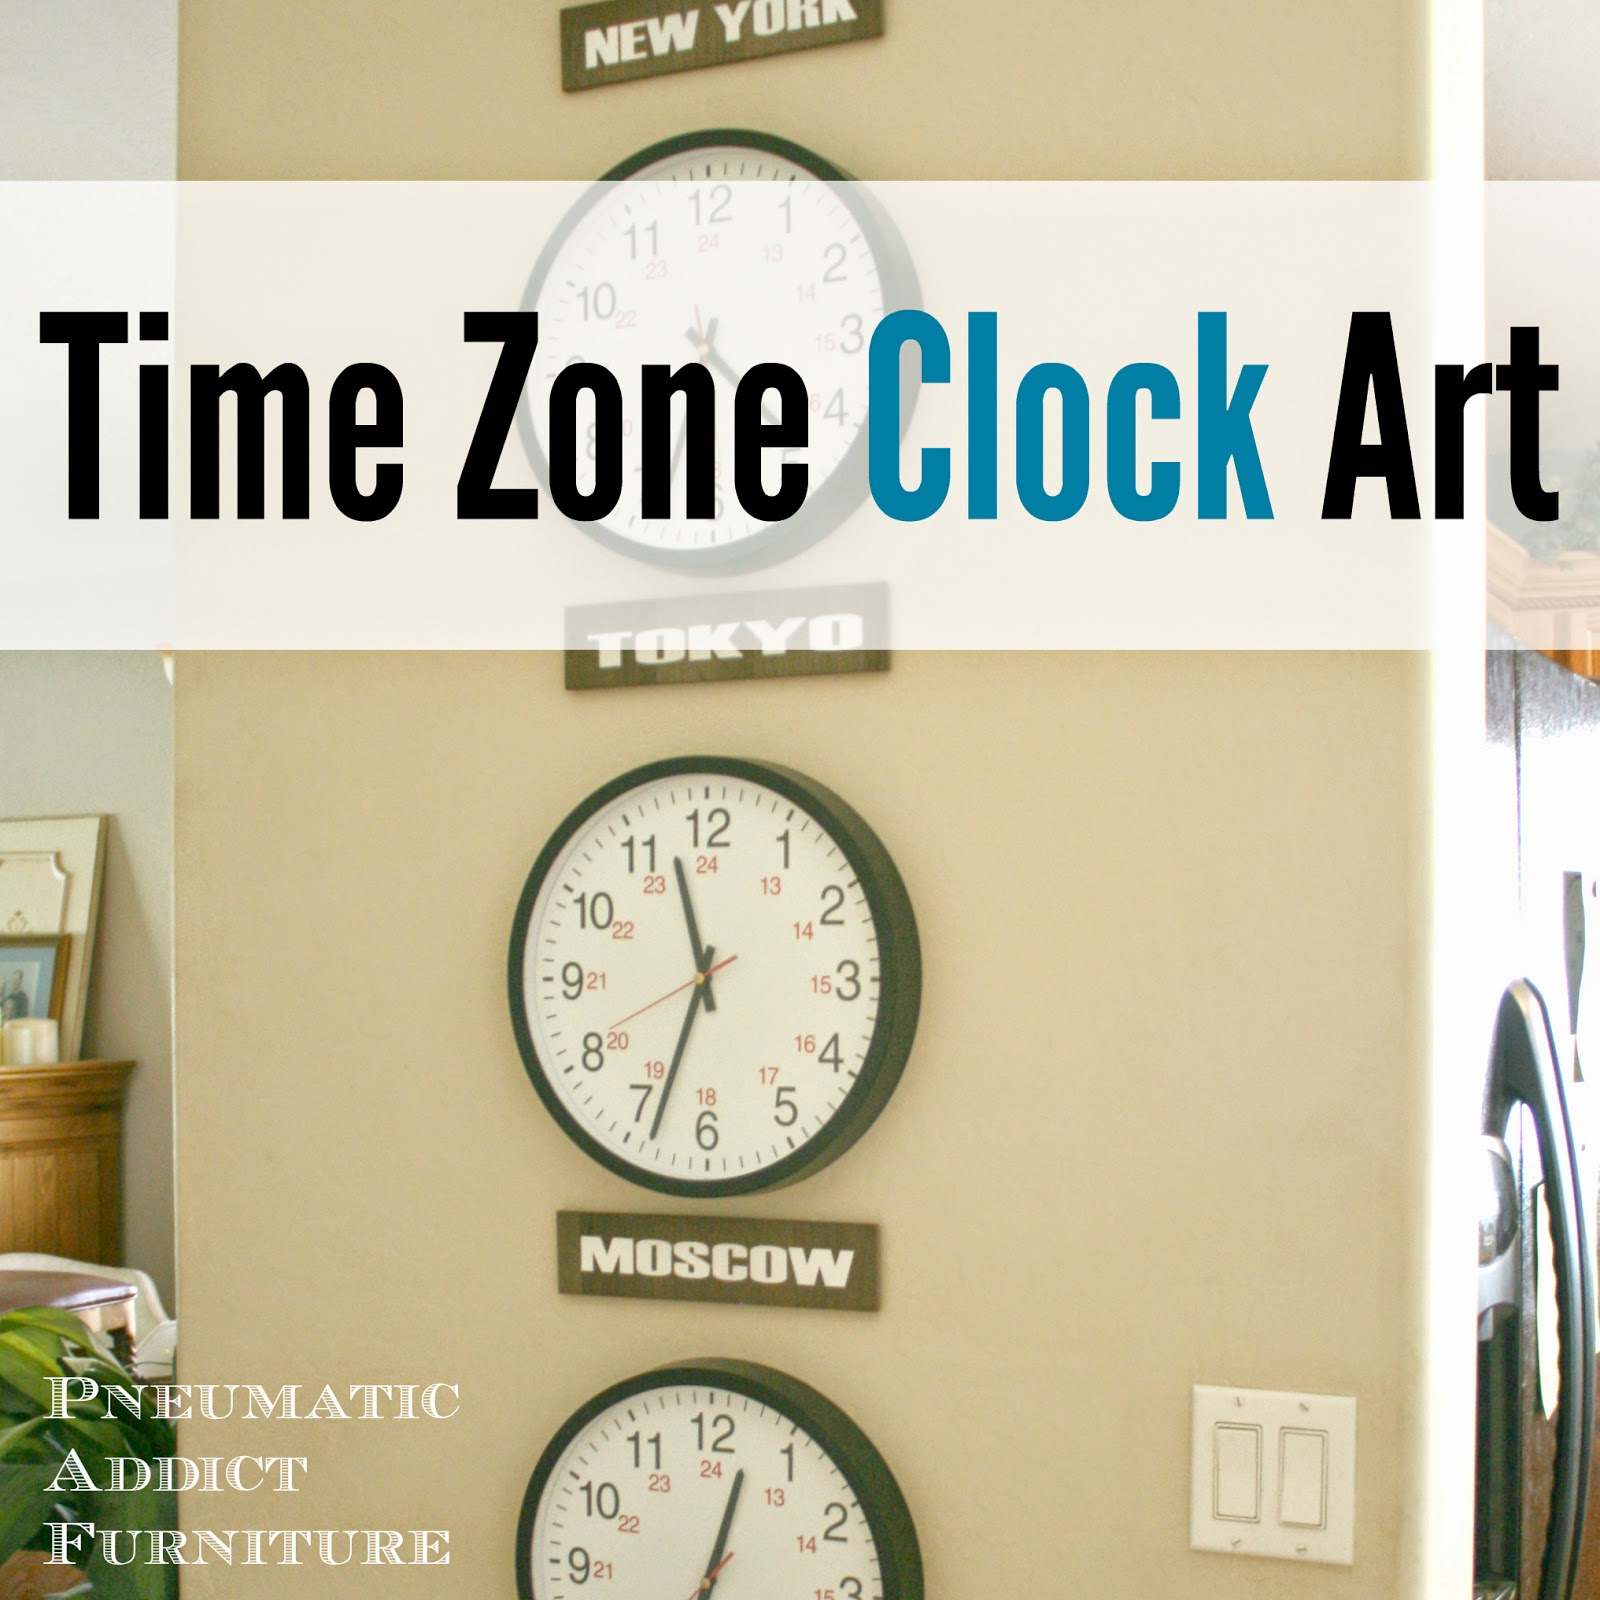 Pneumatic Addict : What Time Is It In Moscow?: Time Zone Clock Art